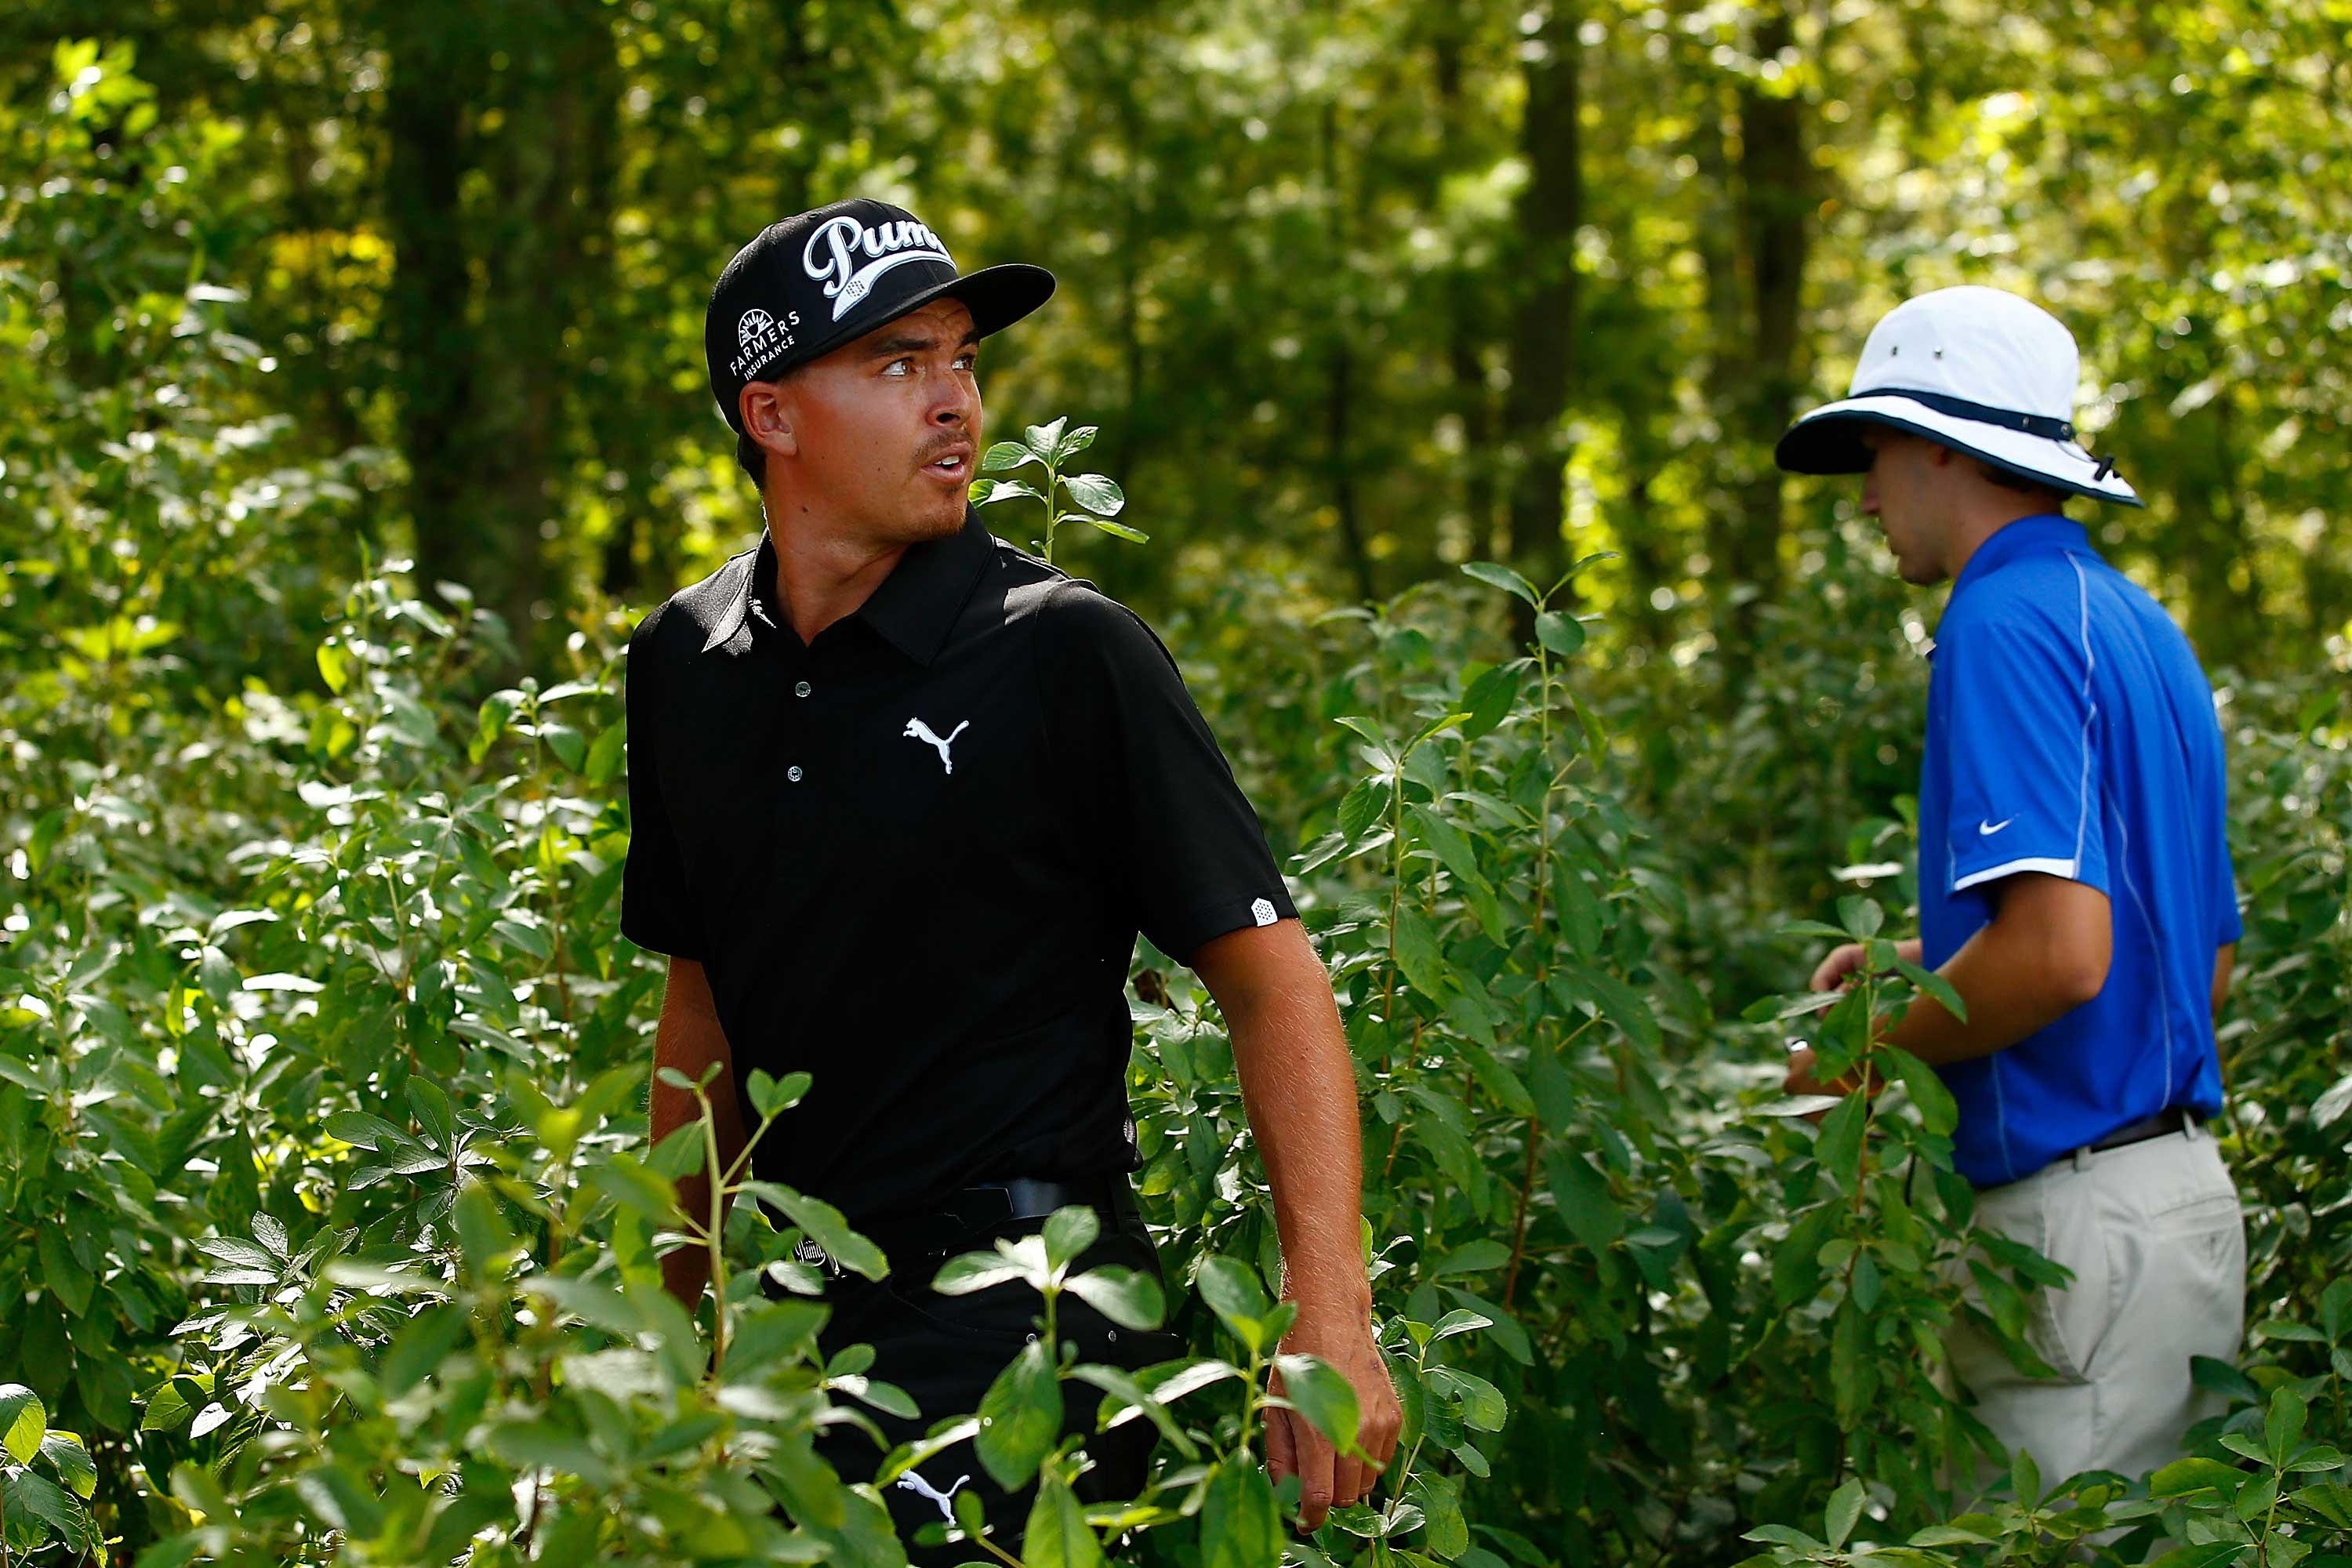 Rickie Fowler and a volunteer look for a ball at TPC Boston, venue of the Deutsche Bank Championship (Photo: Jared Wickerham/Getty Images)